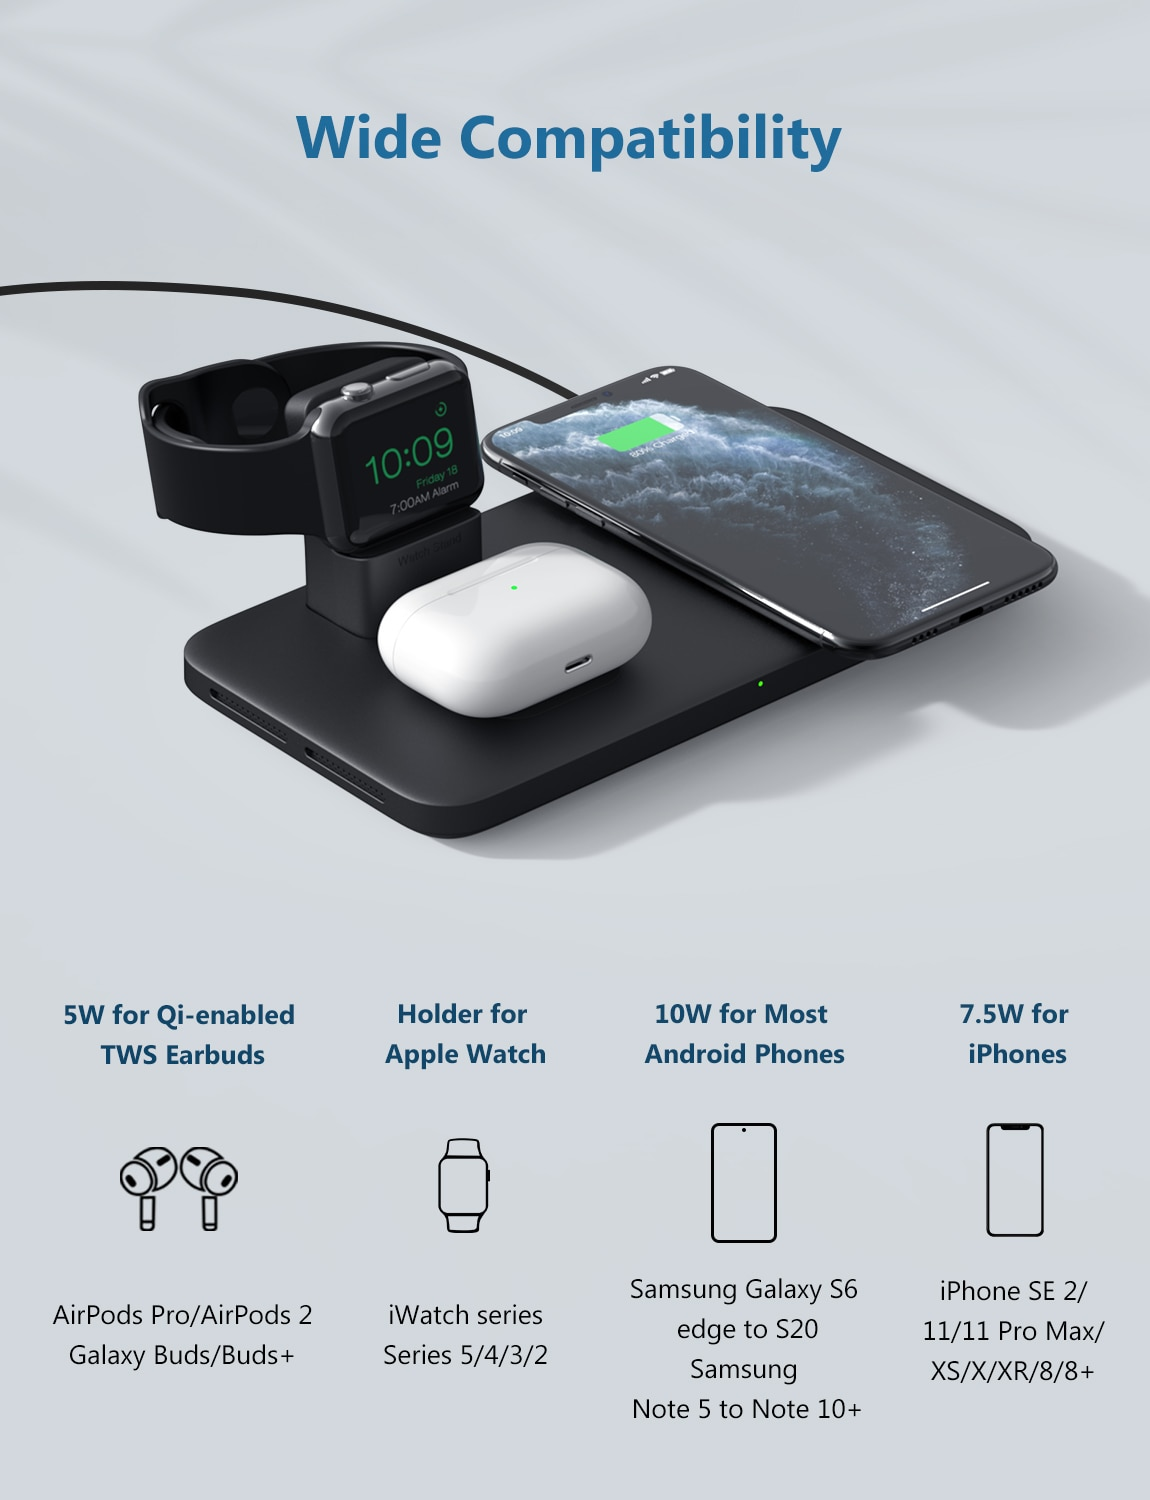 H5d242482bffd4fbeb7d21073af1952c9P - Seneo PA202 Wireless Charger 3 in 1 for iPhone 12 11 Wireless Charging Pad for AirPods Pro 2 Charging Dock for iWatch 5 4 3 2